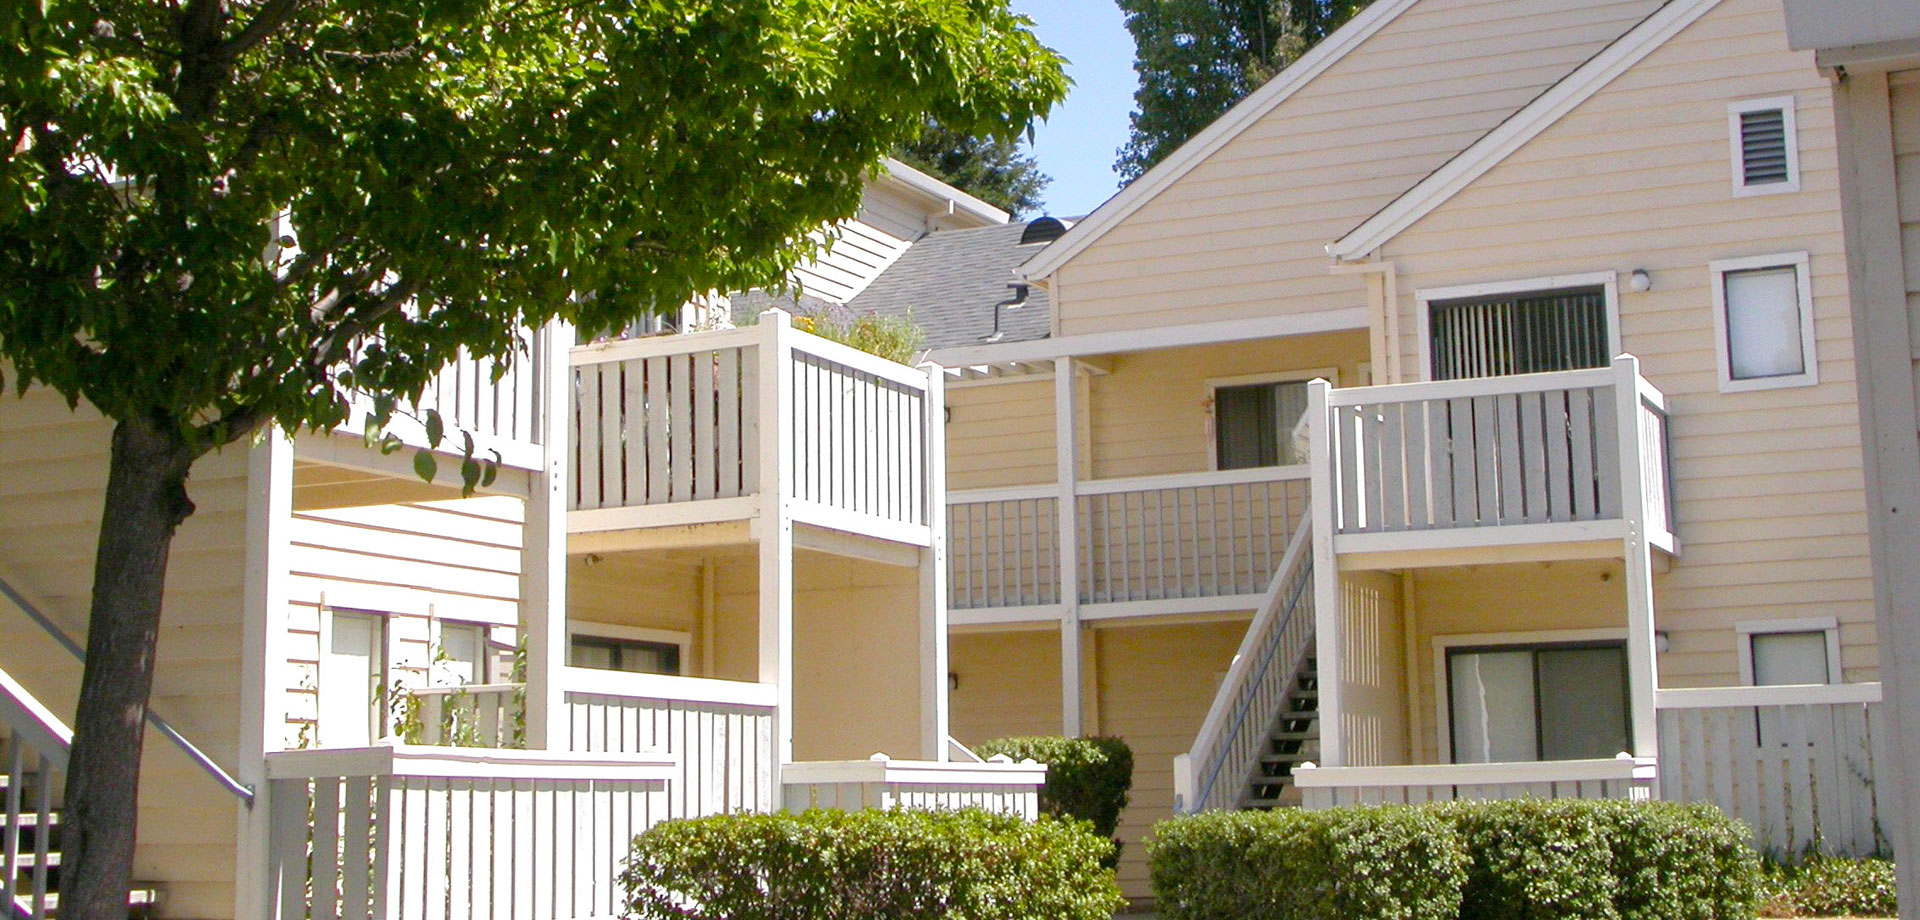 Village View Apartments Apartment Homes In Vallejo Ca Math Wallpaper Golden Find Free HD for Desktop [pastnedes.tk]